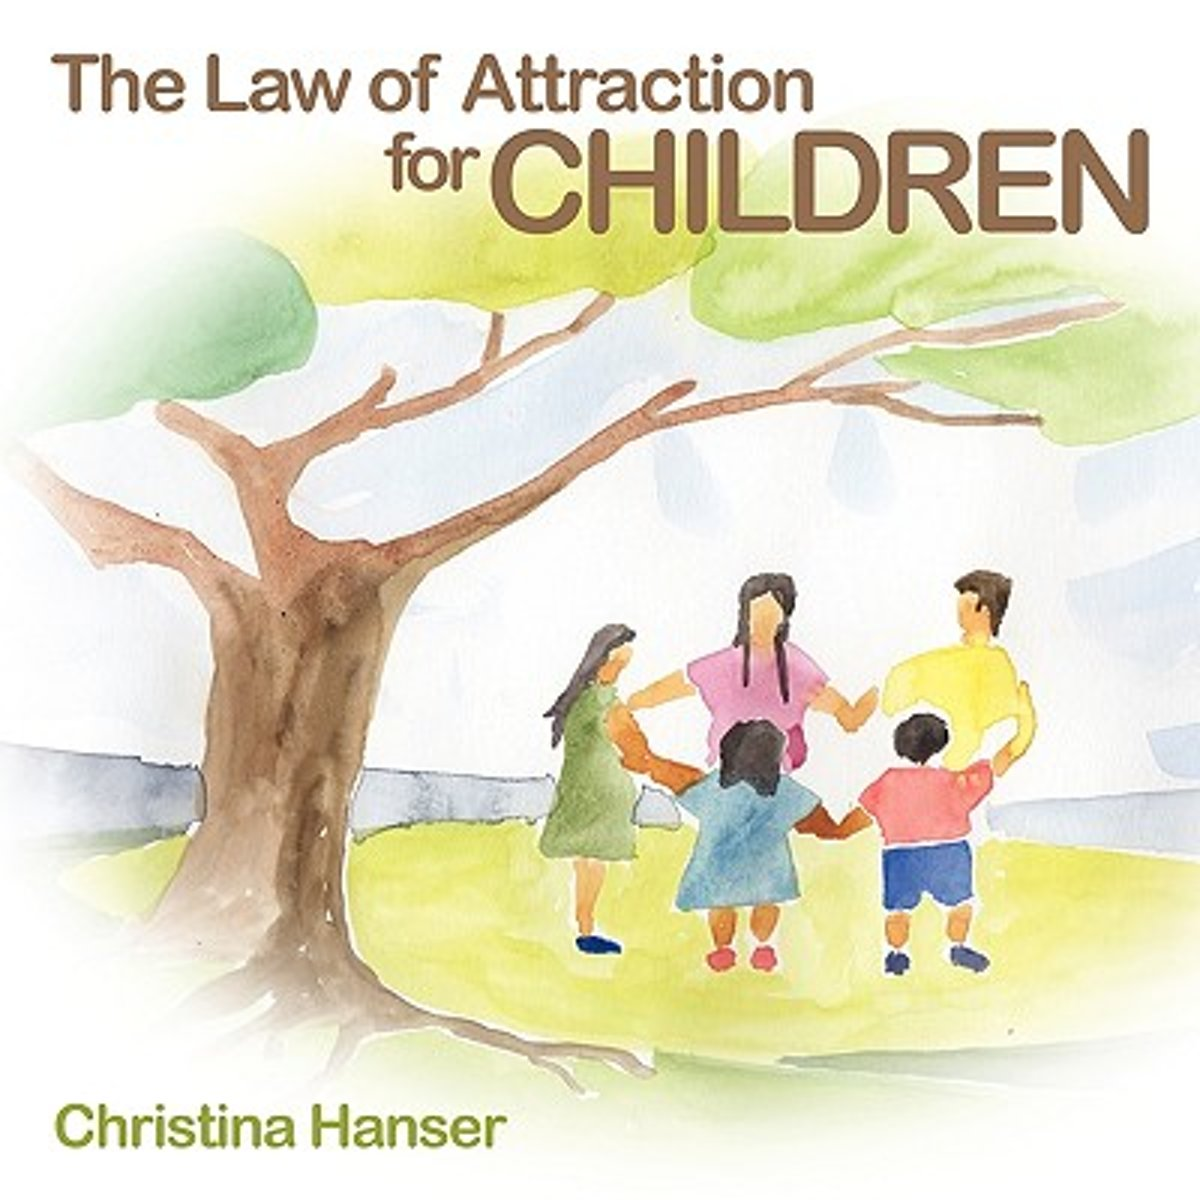 The Law of Attraction for Children